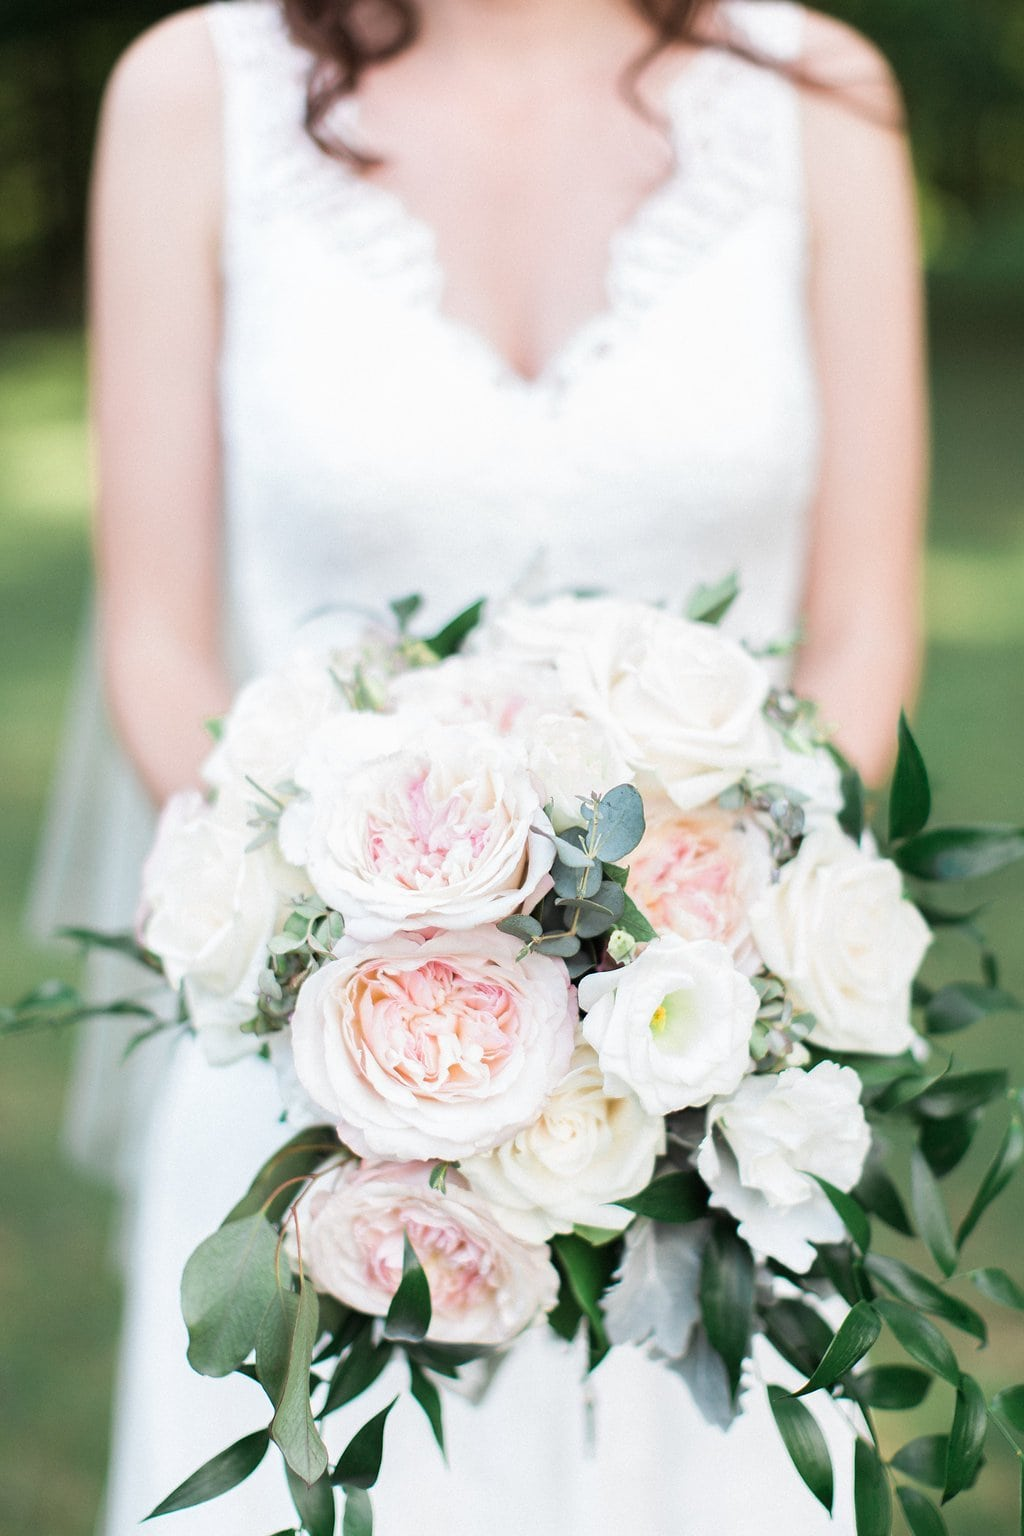 Close up of bride's pink and white bouquet